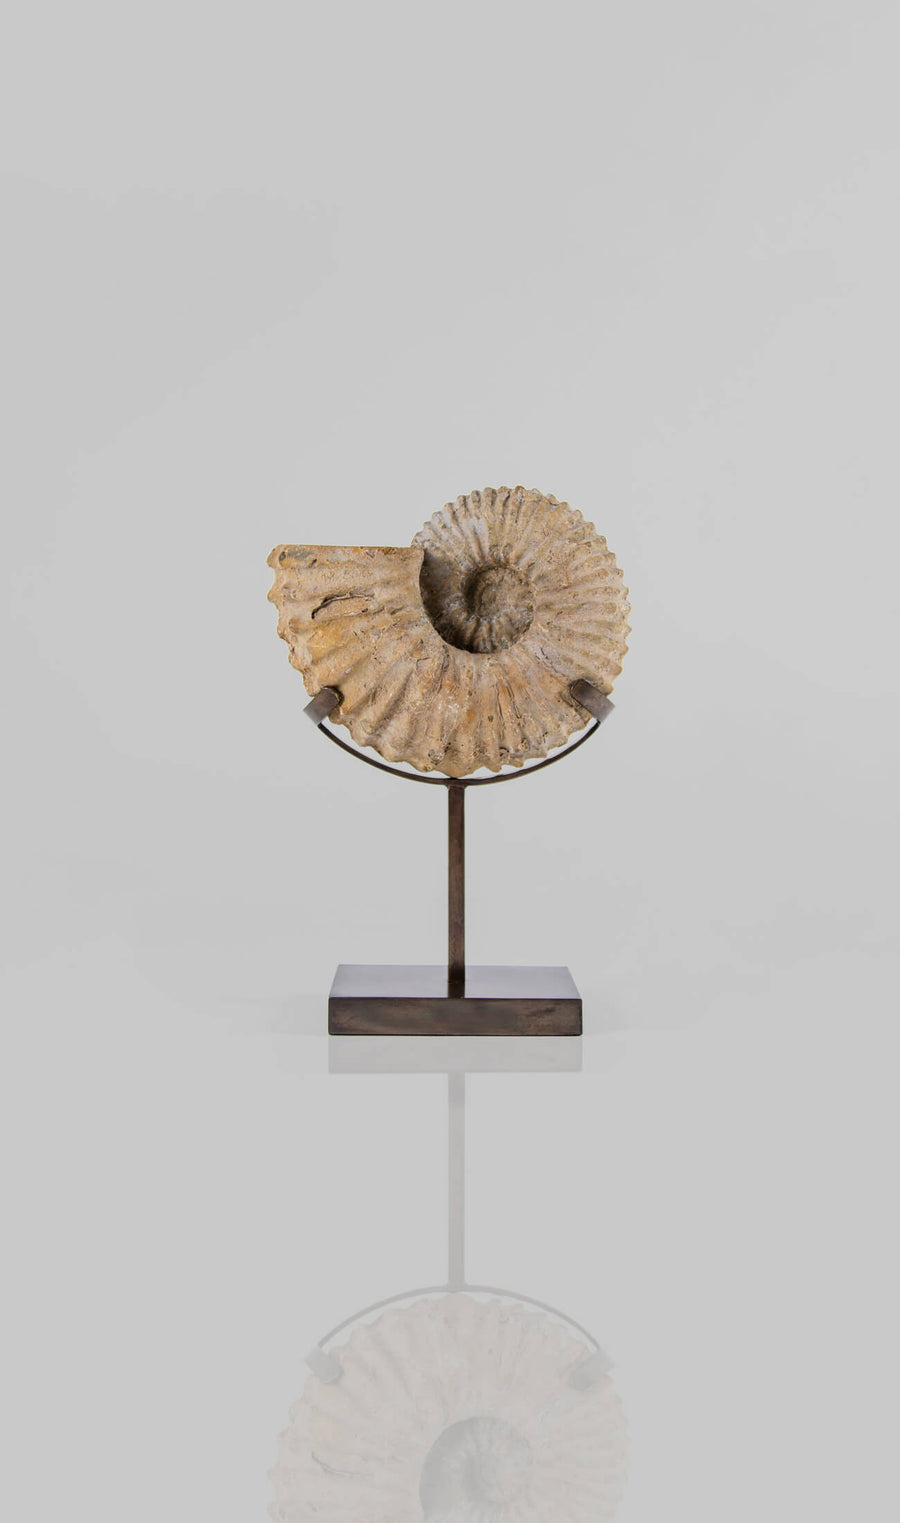 A wonderful example of a double sided Calycoceras asiaticum ammonite measuring 205mm. Now transformed on to our elegant innovated-designed AES bronze stand for spaces out there!